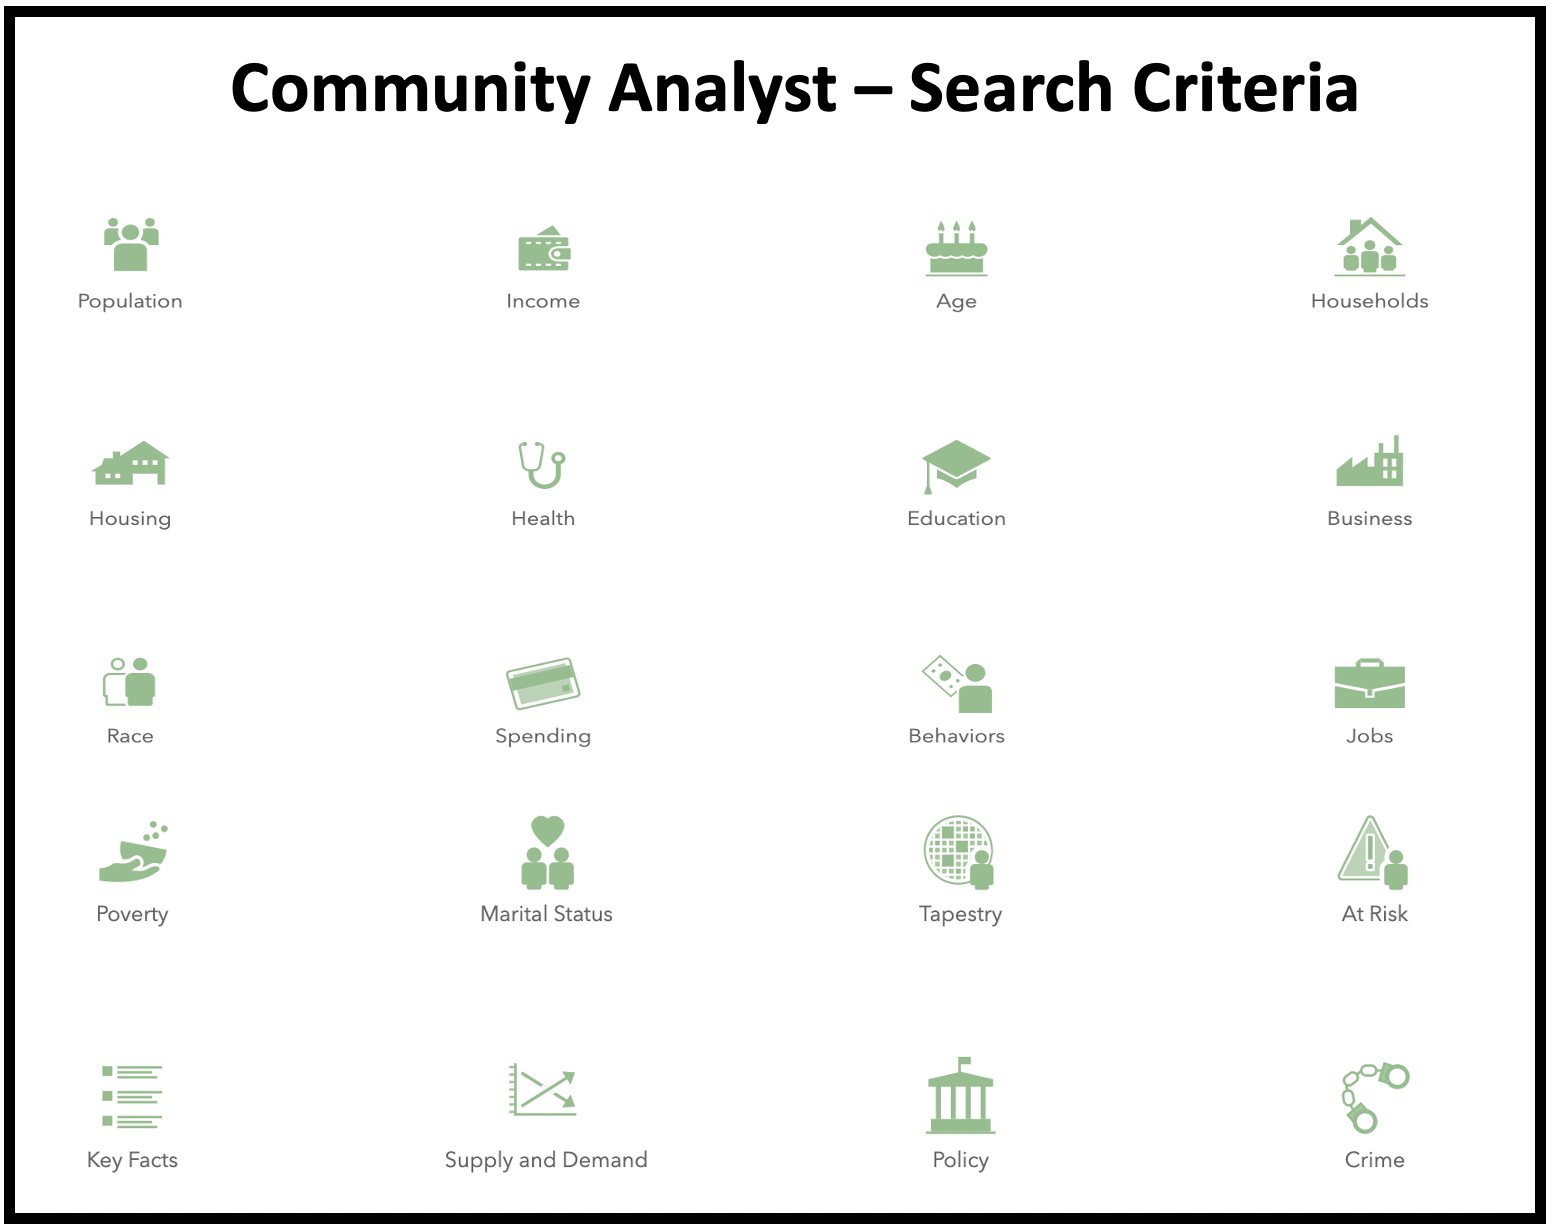 Community Analyst allows for searches by several demographic criteria